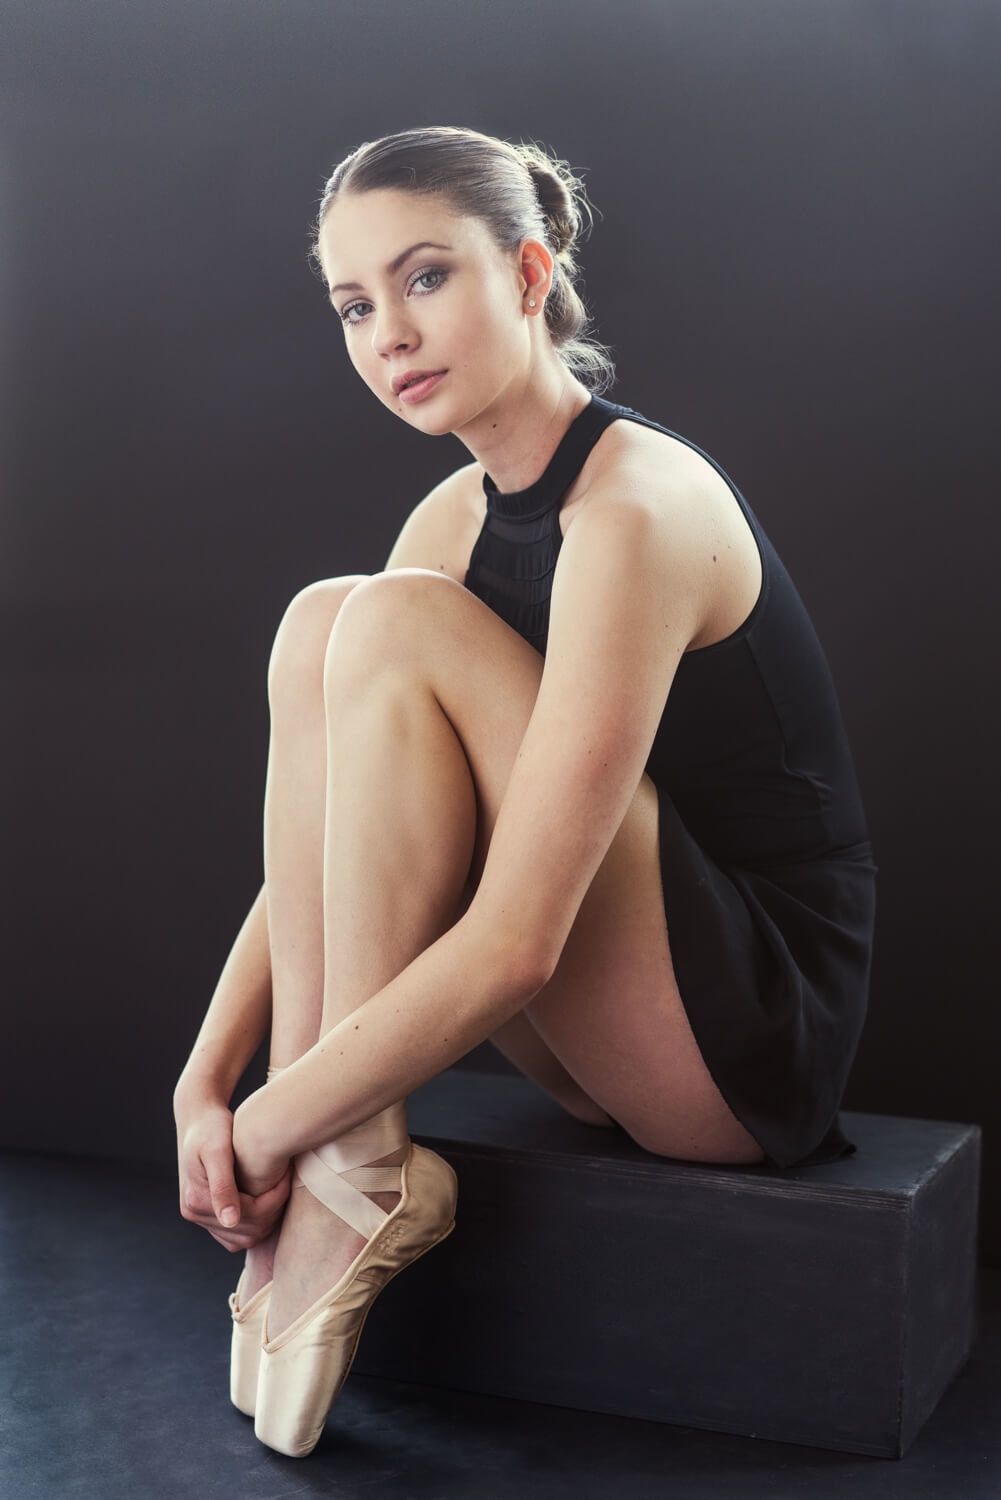 Briana poses in her pointe shoes for her high school senior photos